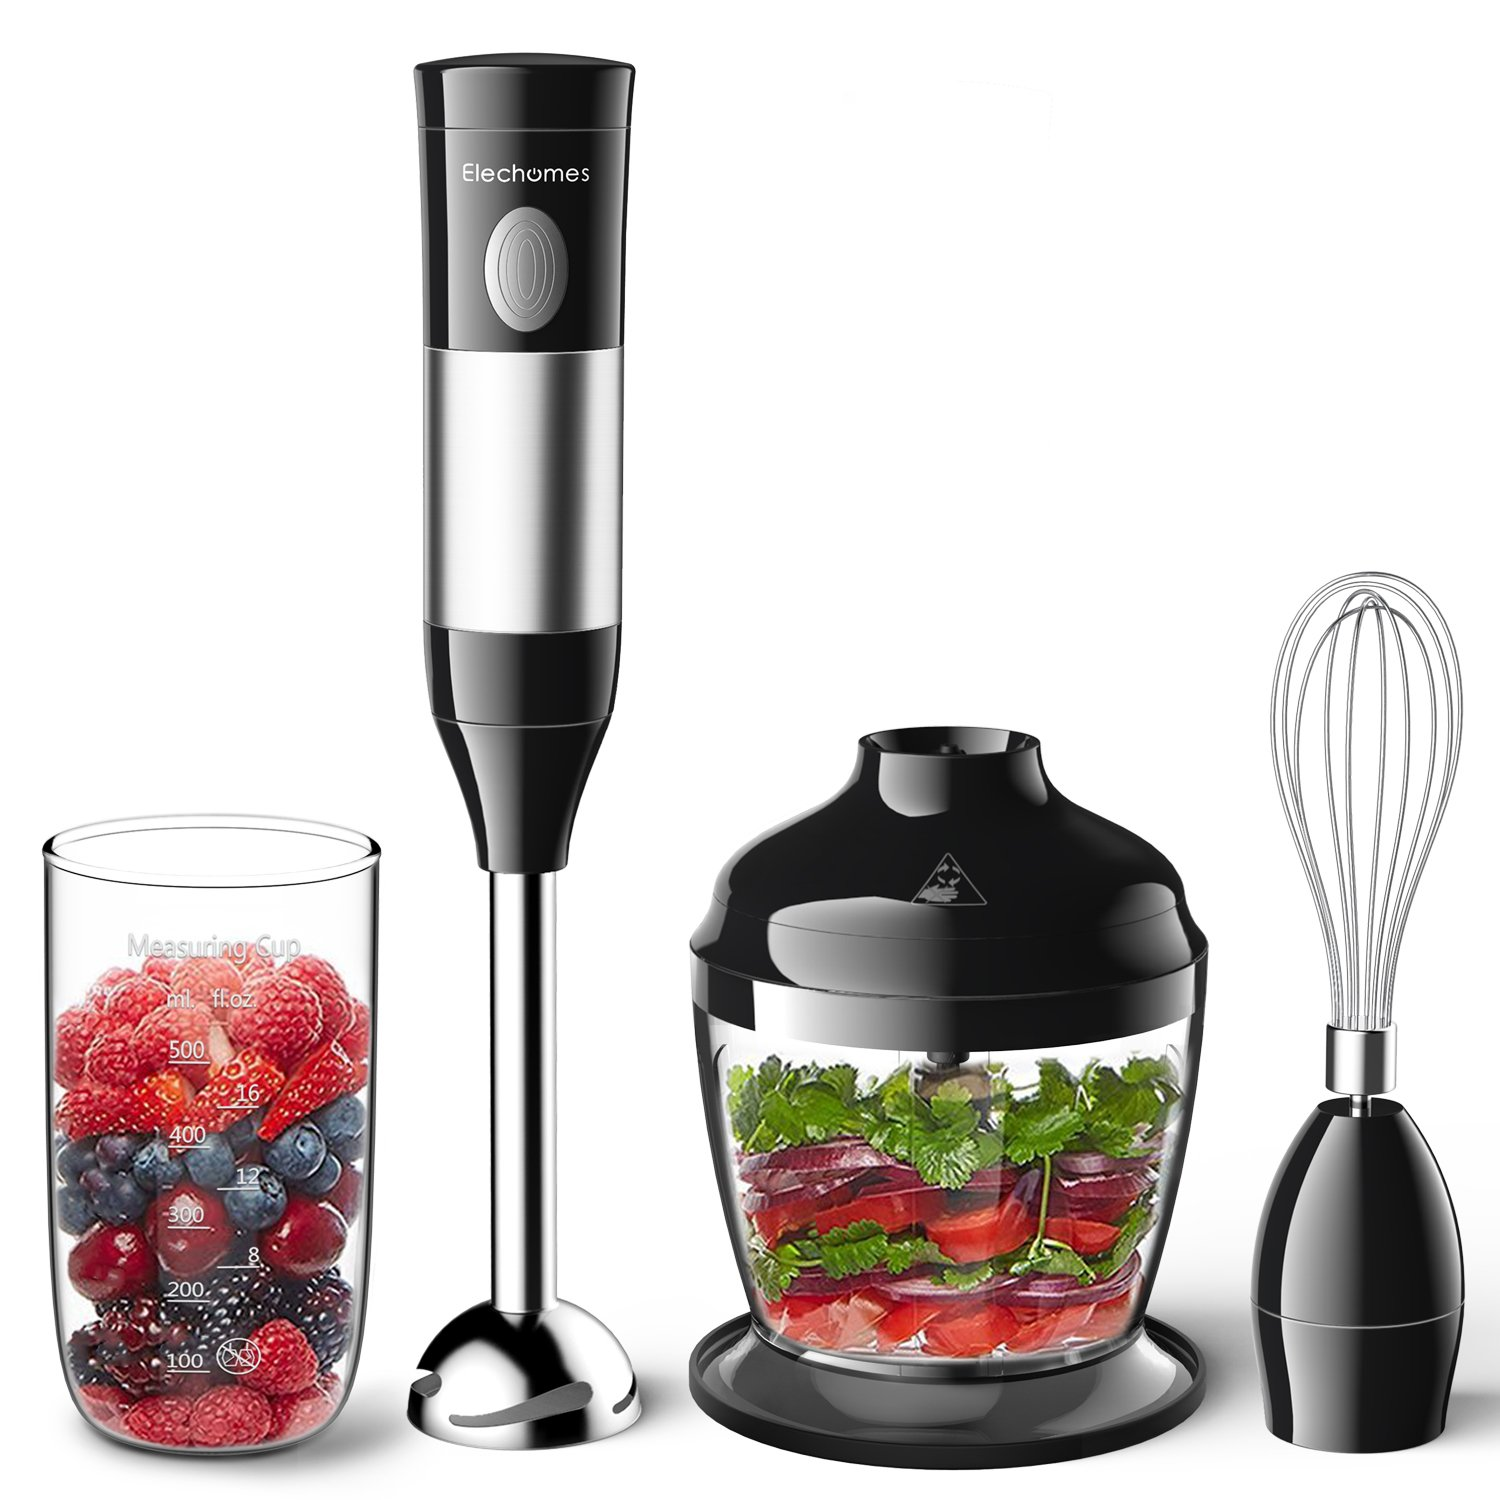 Elechomes 4-in-1 Immersion Hand Blender Set with 2 Speed Control,Includes Food Chopper, Egg Whisk, and BPA-Free Beaker for Smoothies Baby Food Soups